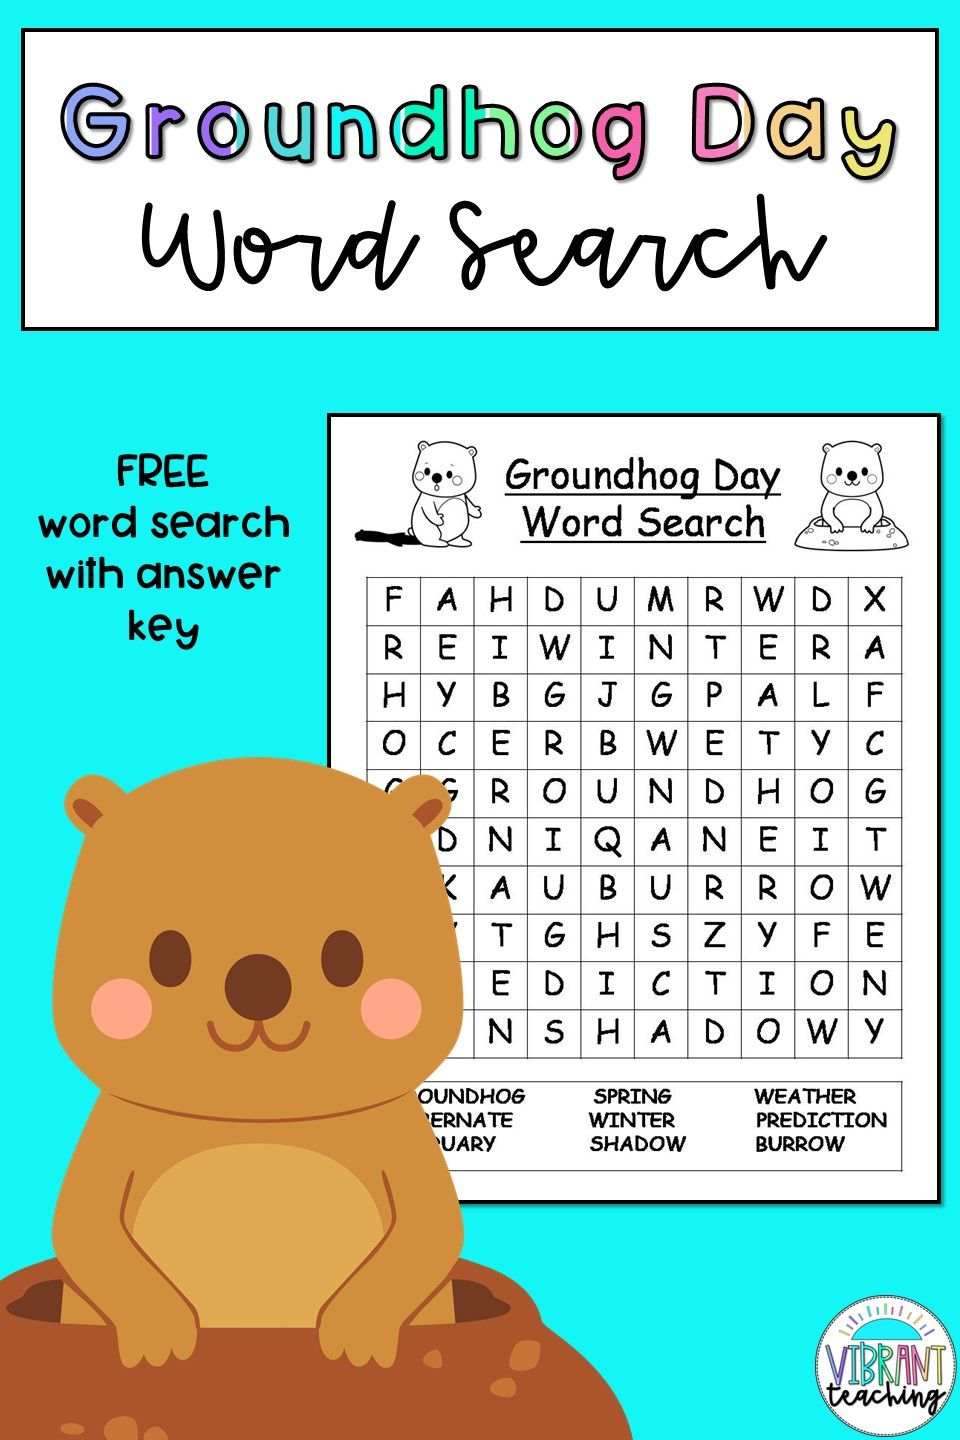 hight resolution of Groundhog Day Word Search in 2021   Groundhog day activities